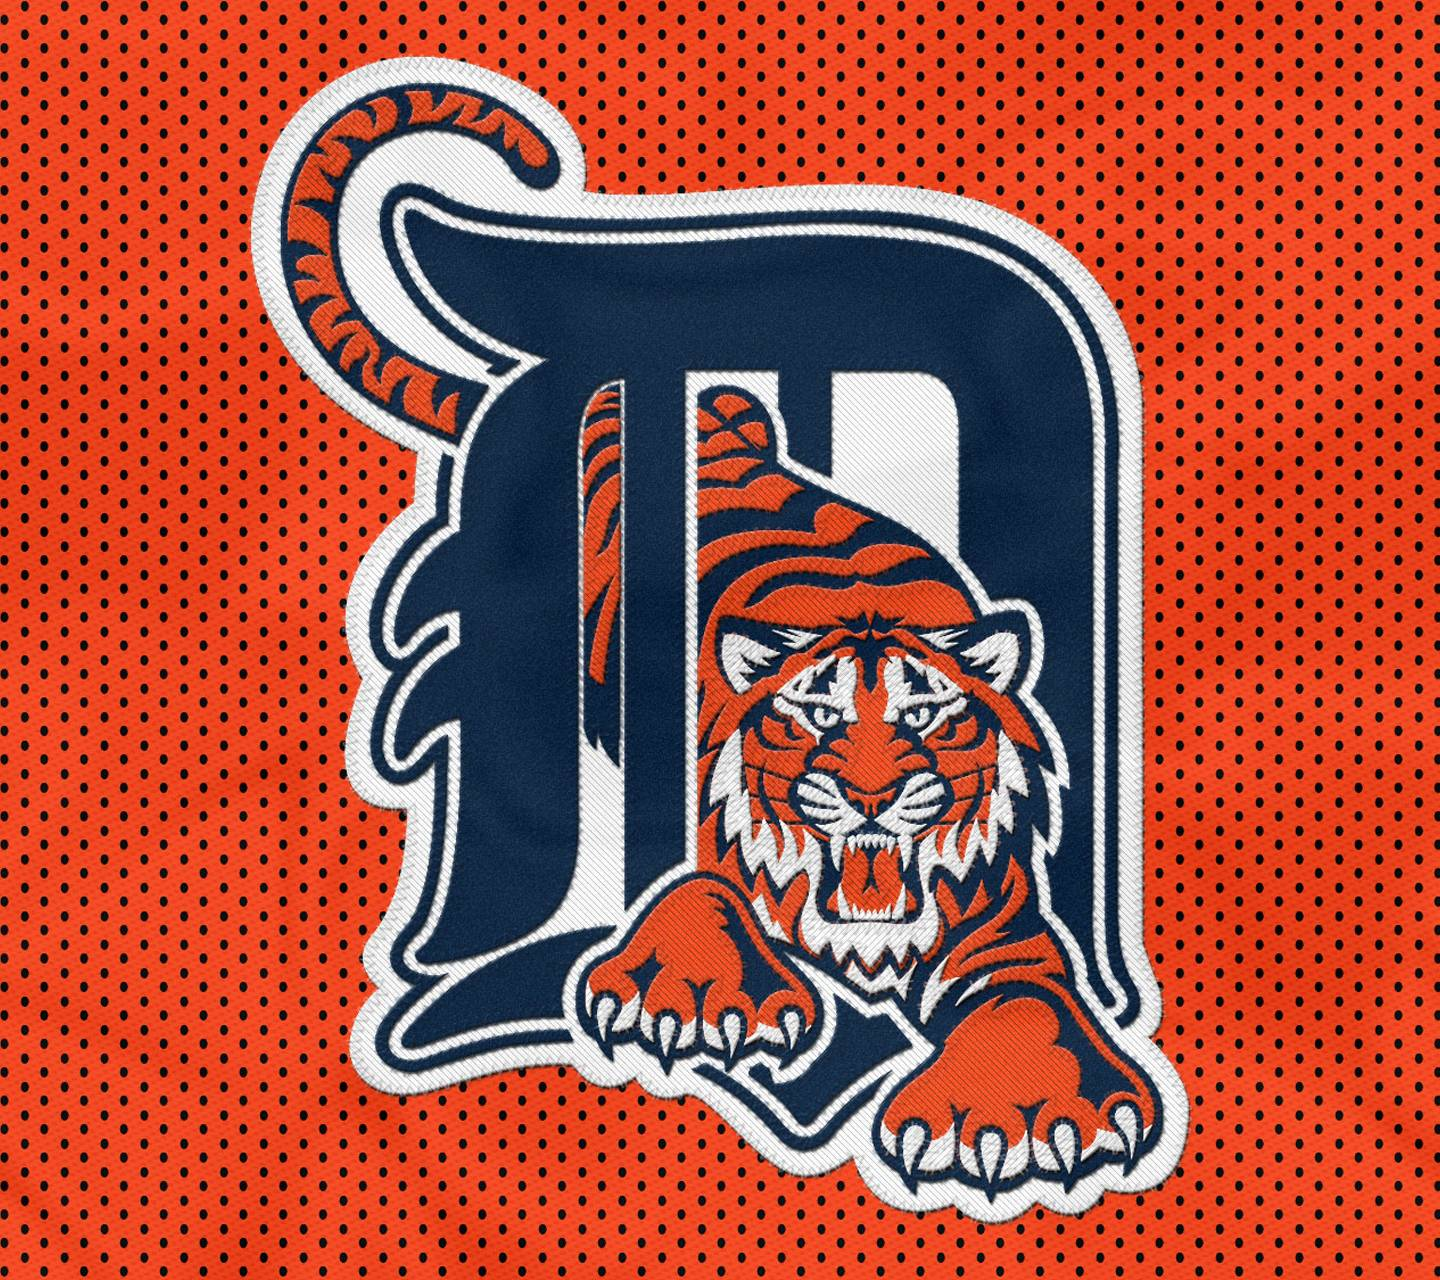 1440x1280 - Detroit Tigers Wallpapers 13